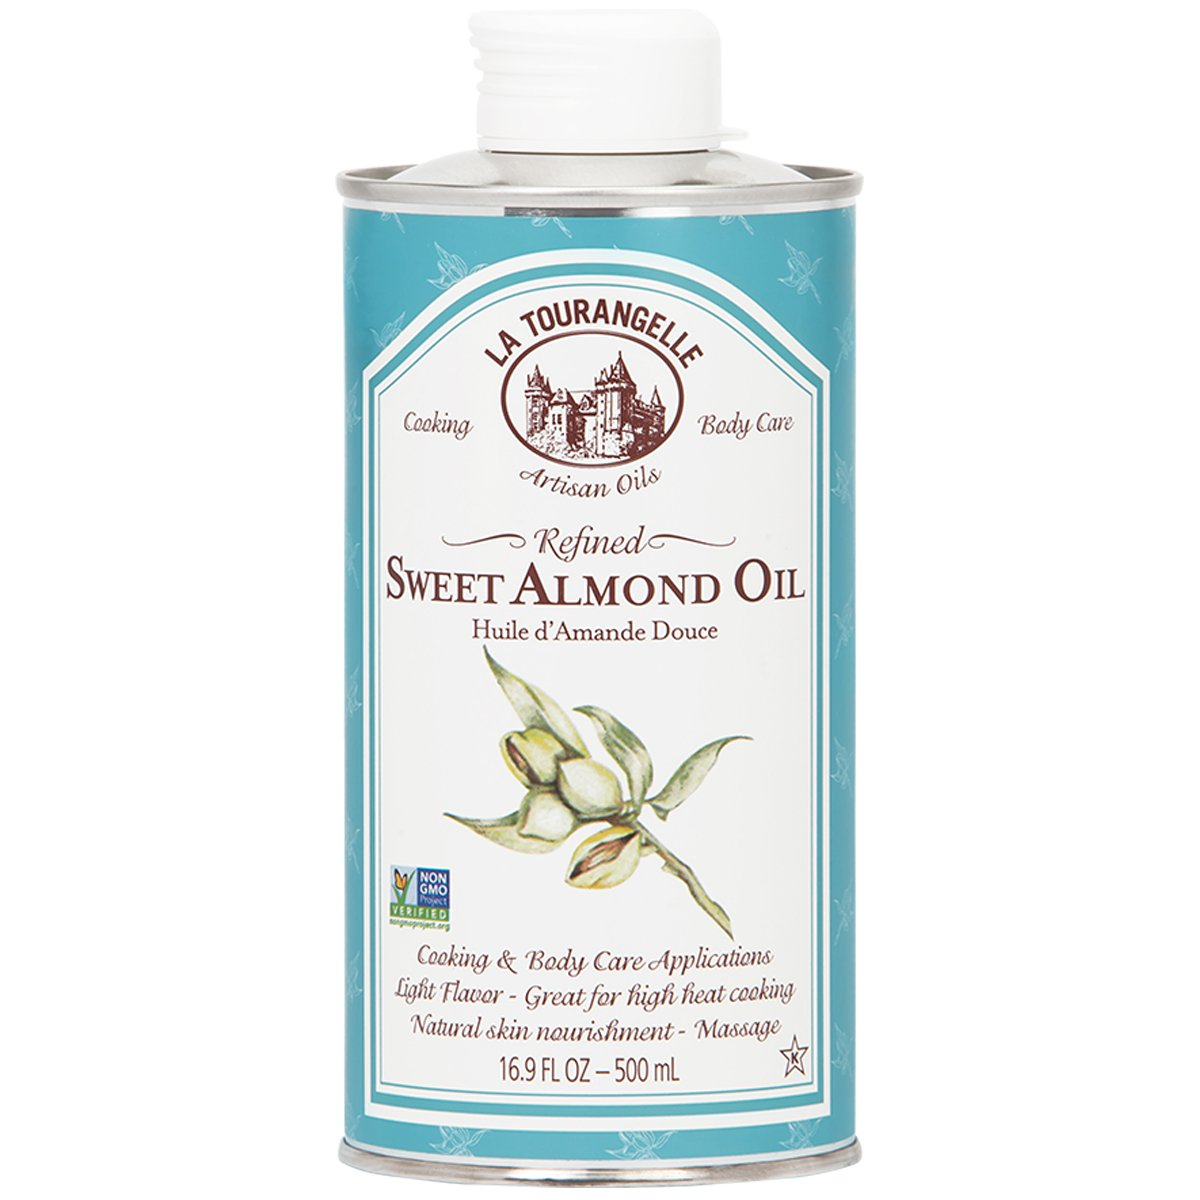 La Tourangelle Sweet Almond Oil 16.9 Fl. Oz., For Both Cooking or Skin Care, Great for Massage or High-Heat Cooking